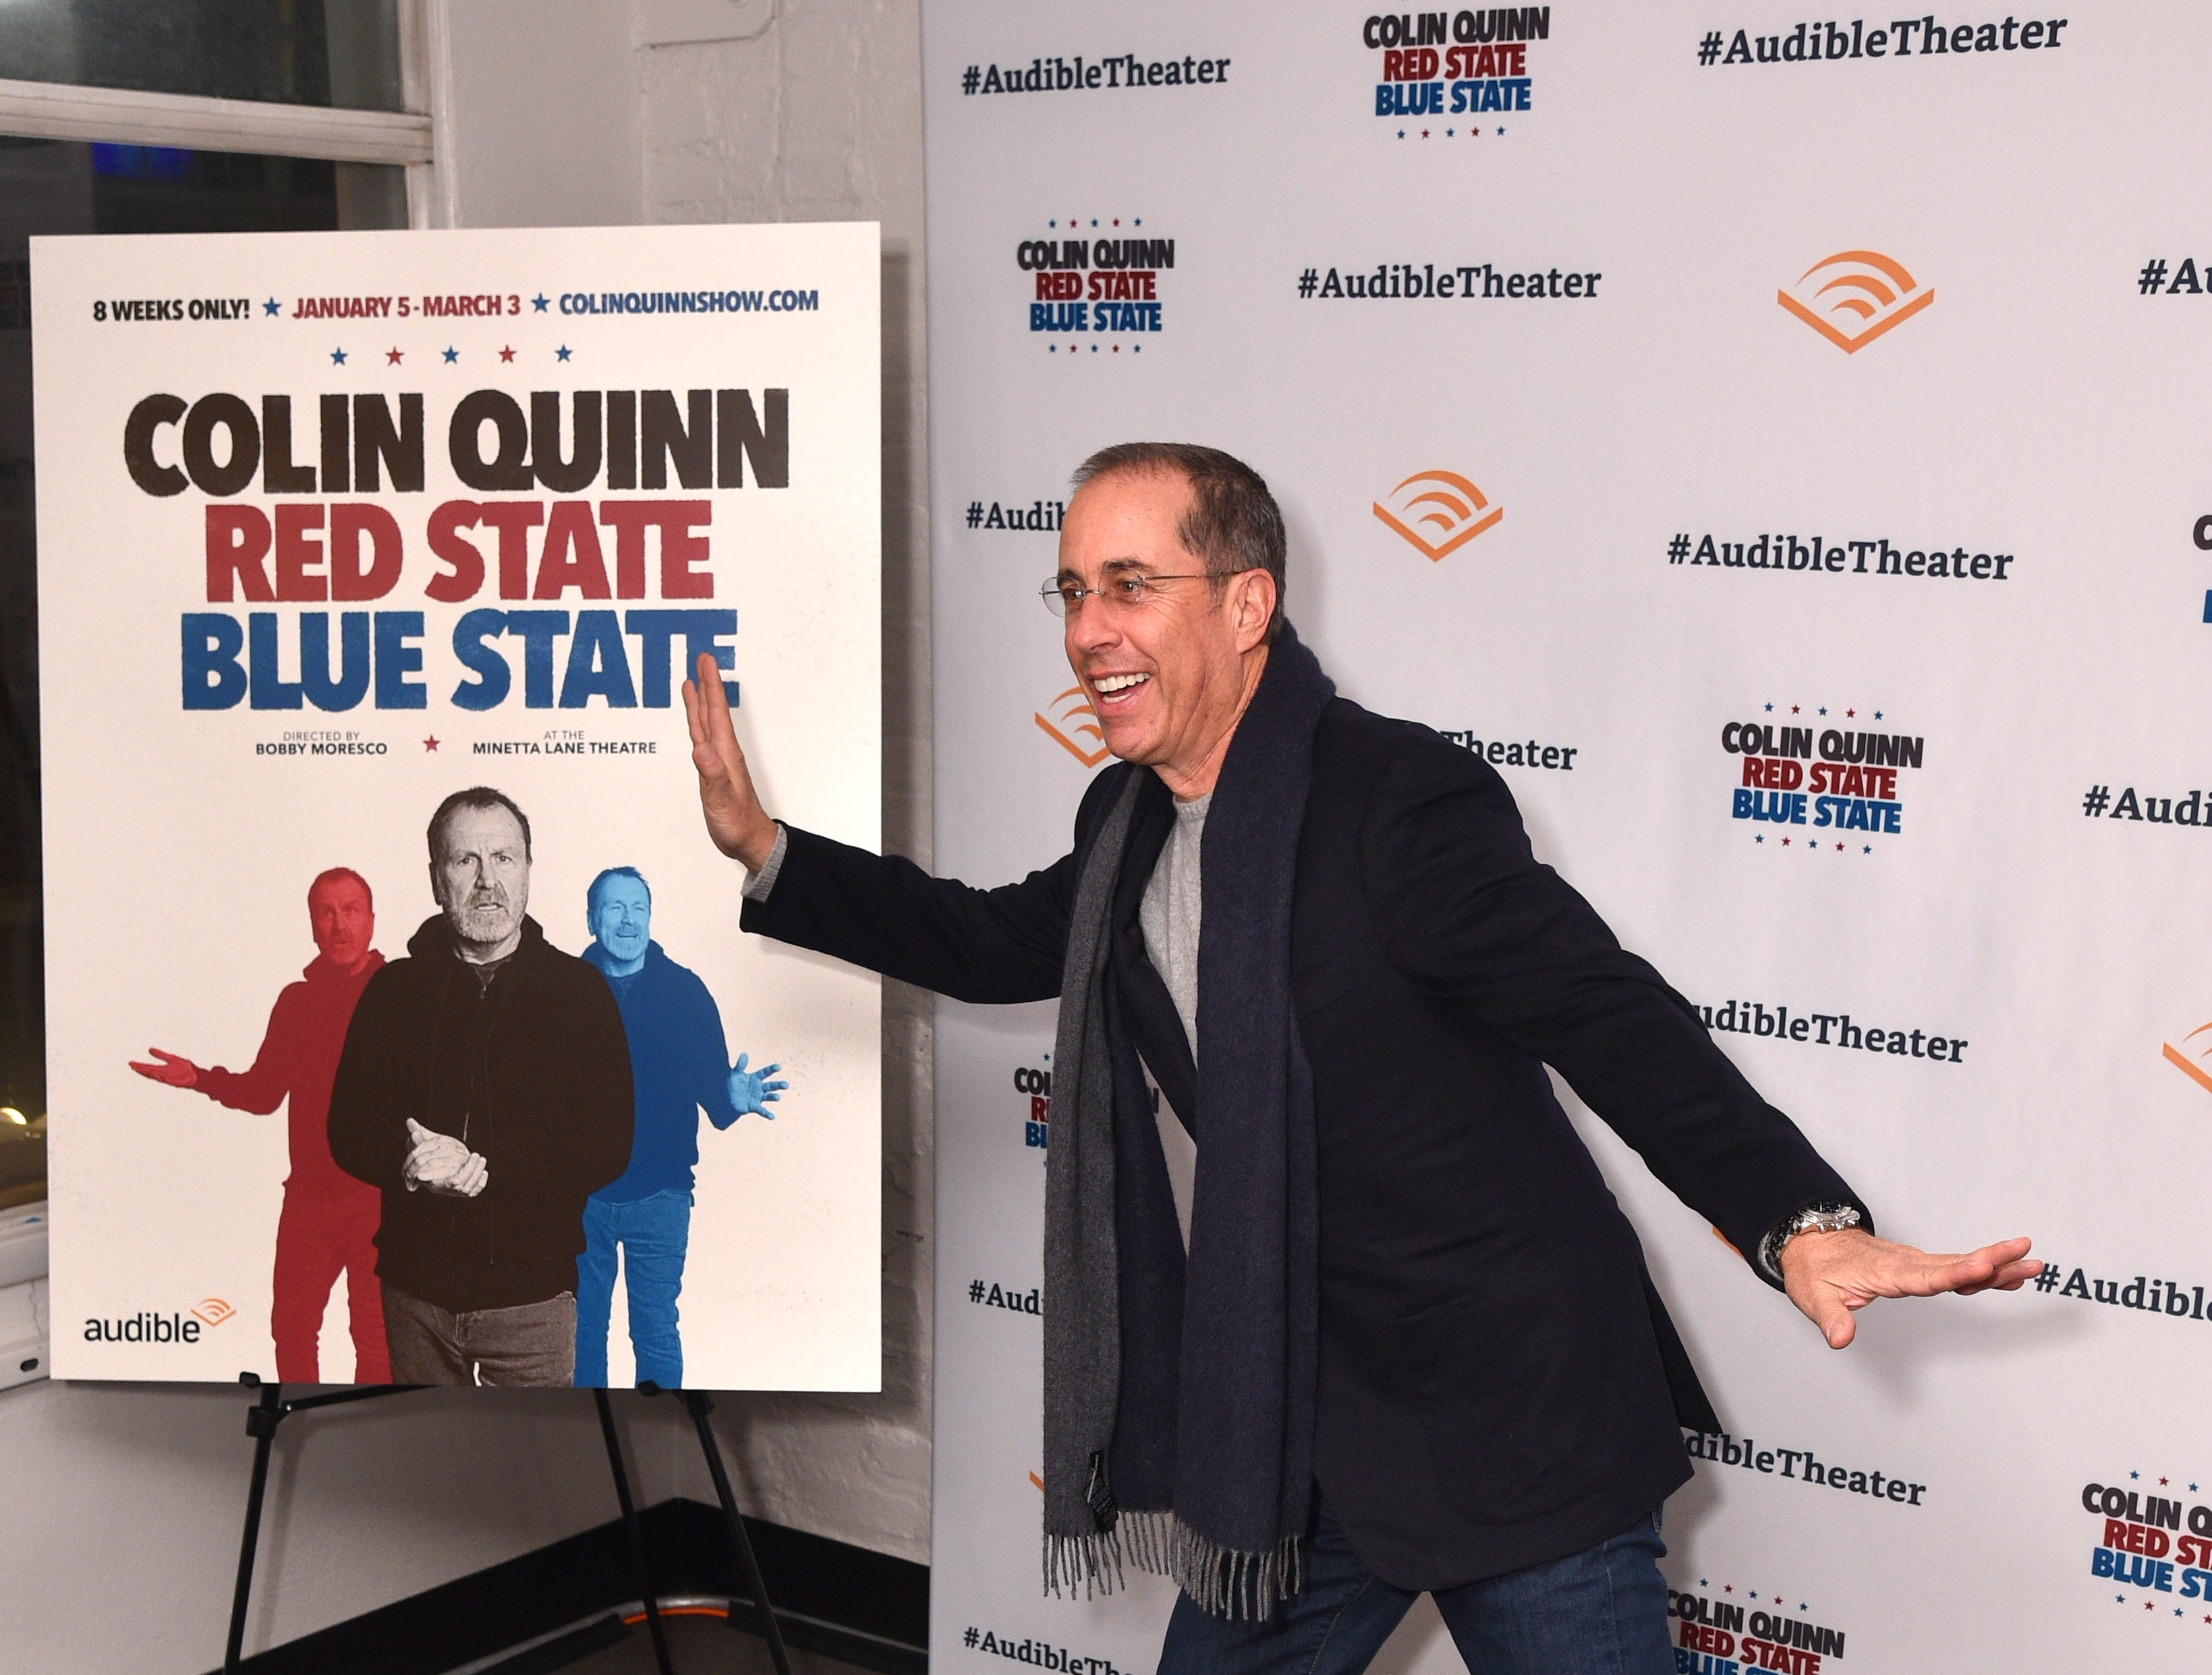 """NEW YORK, NY - JANUARY 22:  Jerry Seinfeld attends the Opening Night for Colin Quinn's """"Red State Blue State"""" at Audible's Minetta Lane Theatre in NYC at the Minetta Lane Theatre on January 22, 2019 in New York City.  (Photo by Bryan Bedder/Getty Images for Audible) ORG XMIT: 775284383 ORIG FILE ID: 1086481380"""